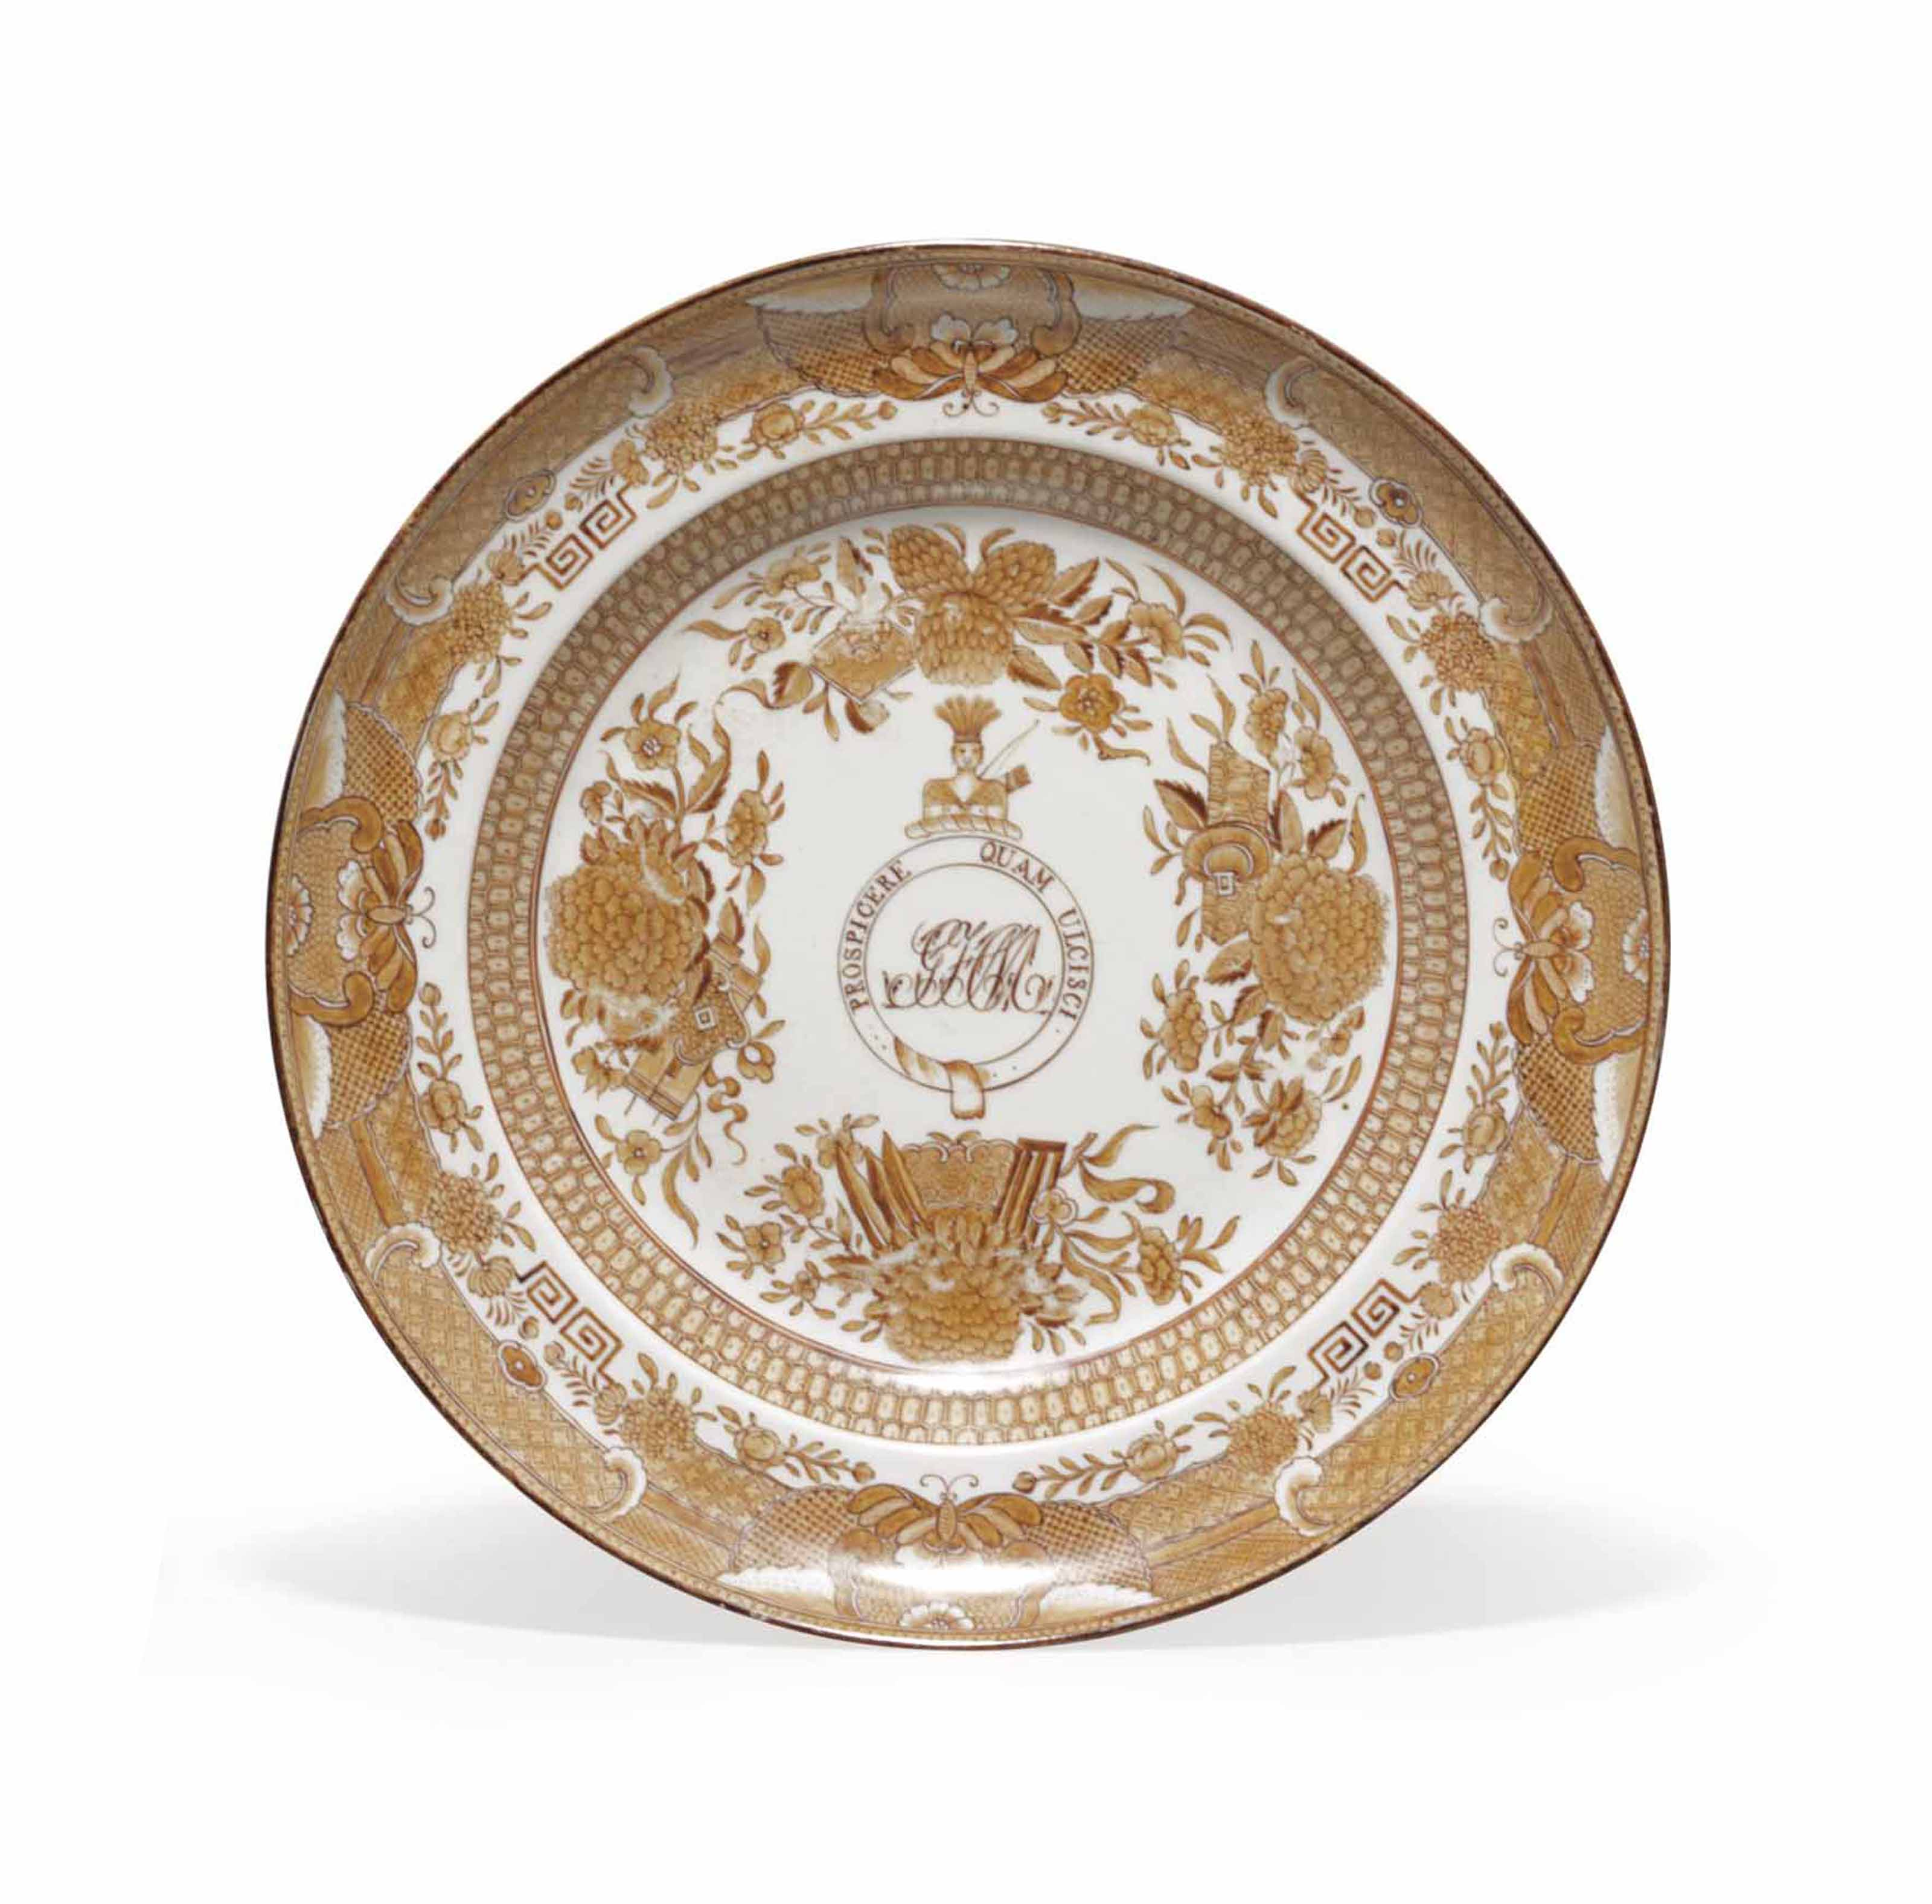 A CHINESE EXPORT PORCELAIN CRESTED AND INITIALED 'BROWN FITZHUGH' SOUP PLATE